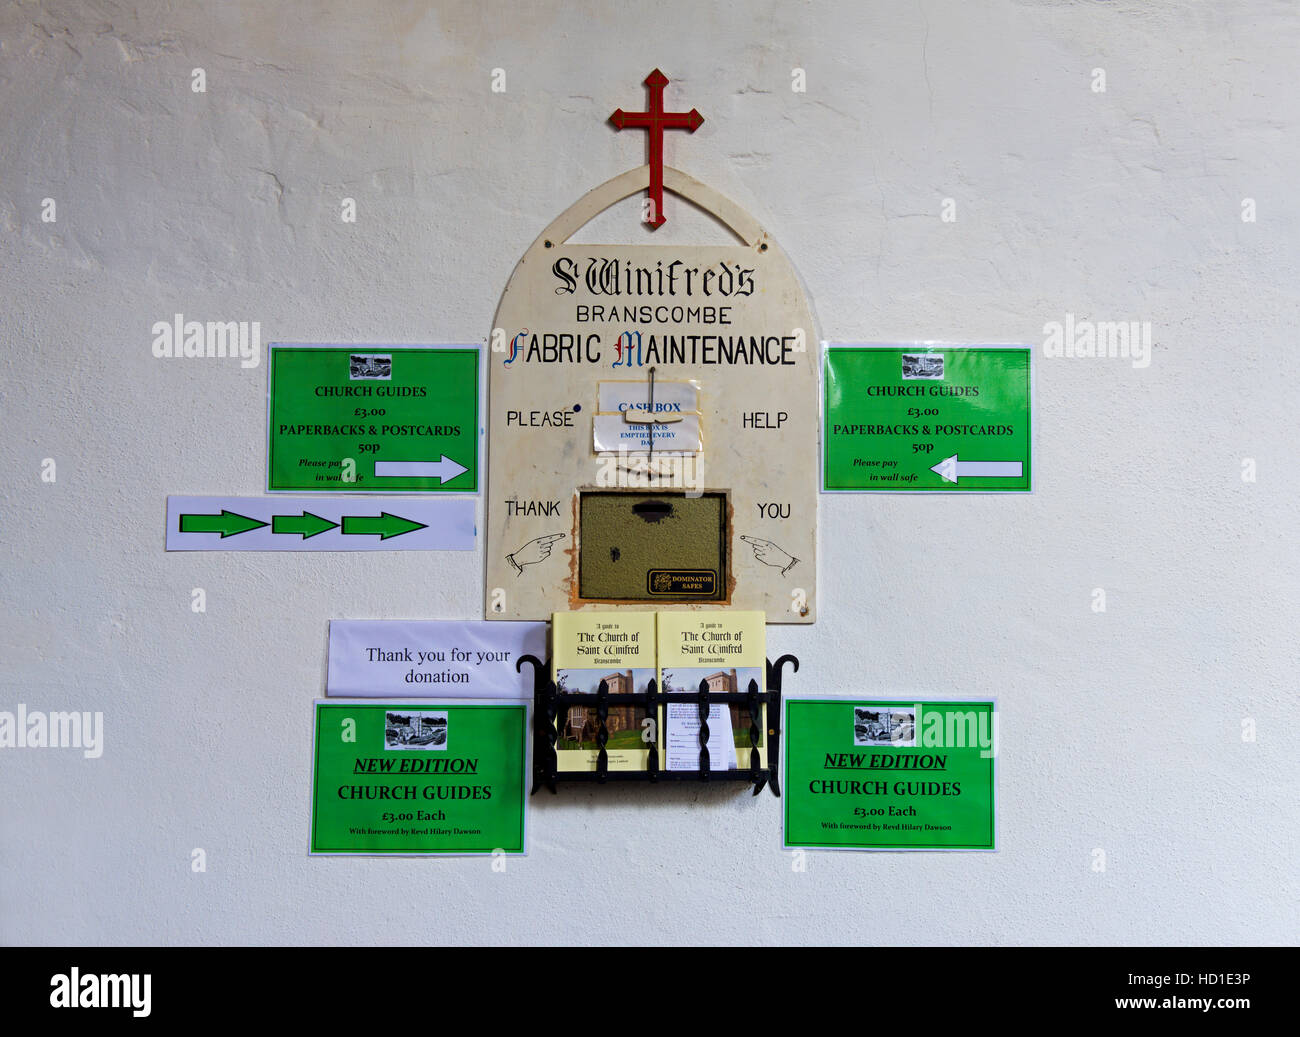 Appeal for donations at St Winifred's Church, Branscombe, Devon, England UK - Stock Image